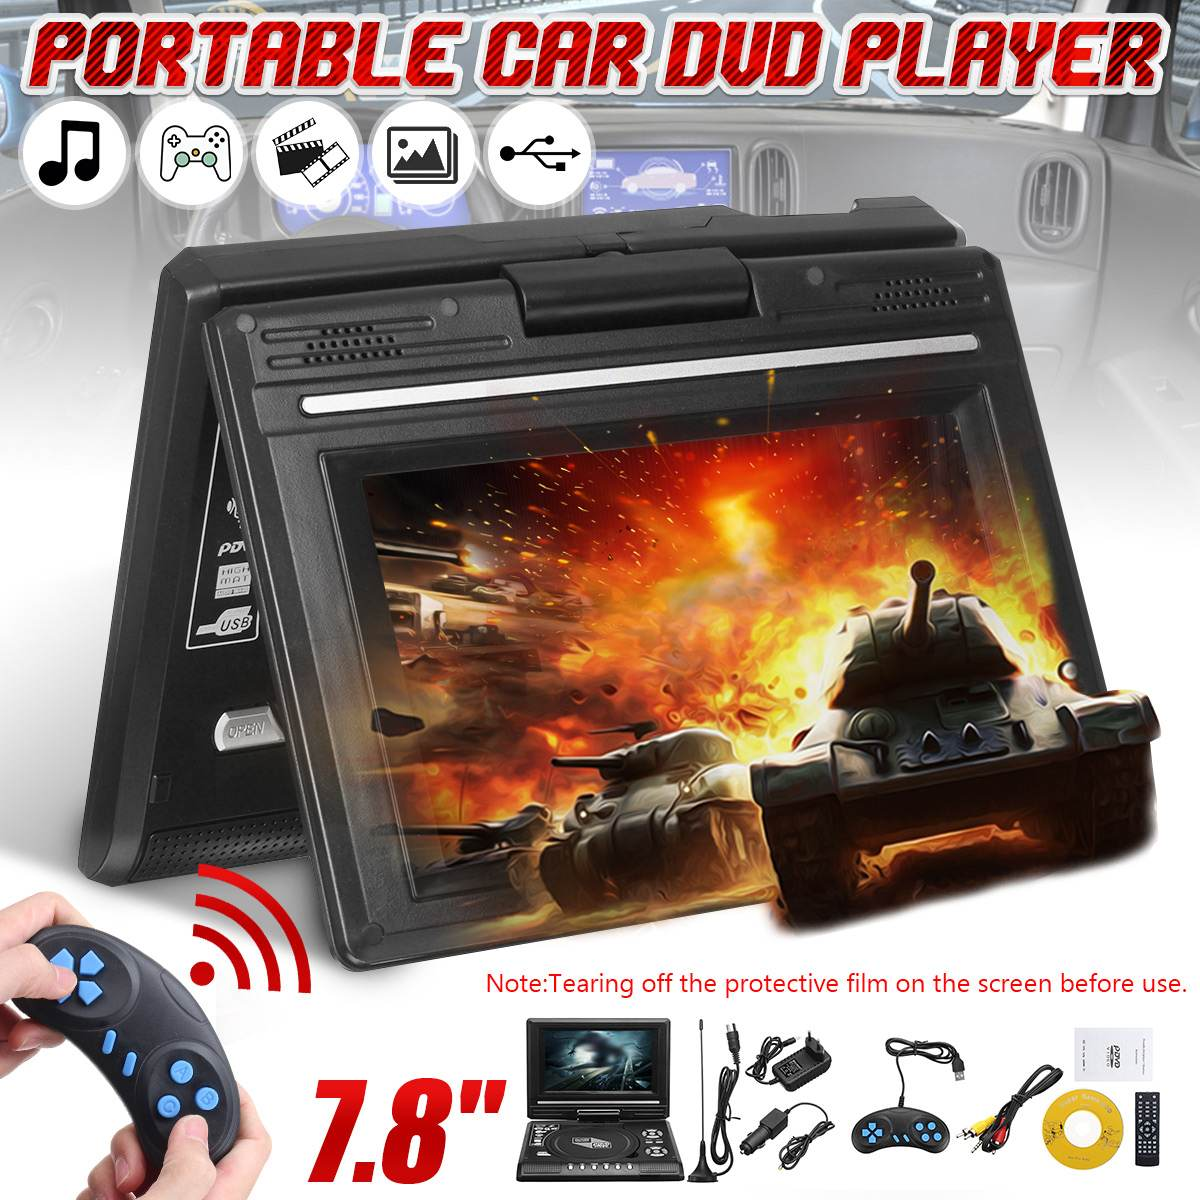 Portable 7.8 Inch HD TV Home <font><b>Car</b></font> DVD <font><b>Player</b></font> VCD <font><b>CD</b></font> <font><b>MP3</b></font> DVD <font><b>Player</b></font> <font><b>USB</b></font> SD Cards RCA TV Portatil Cable Game 16:9 Rotate LCD Screen image